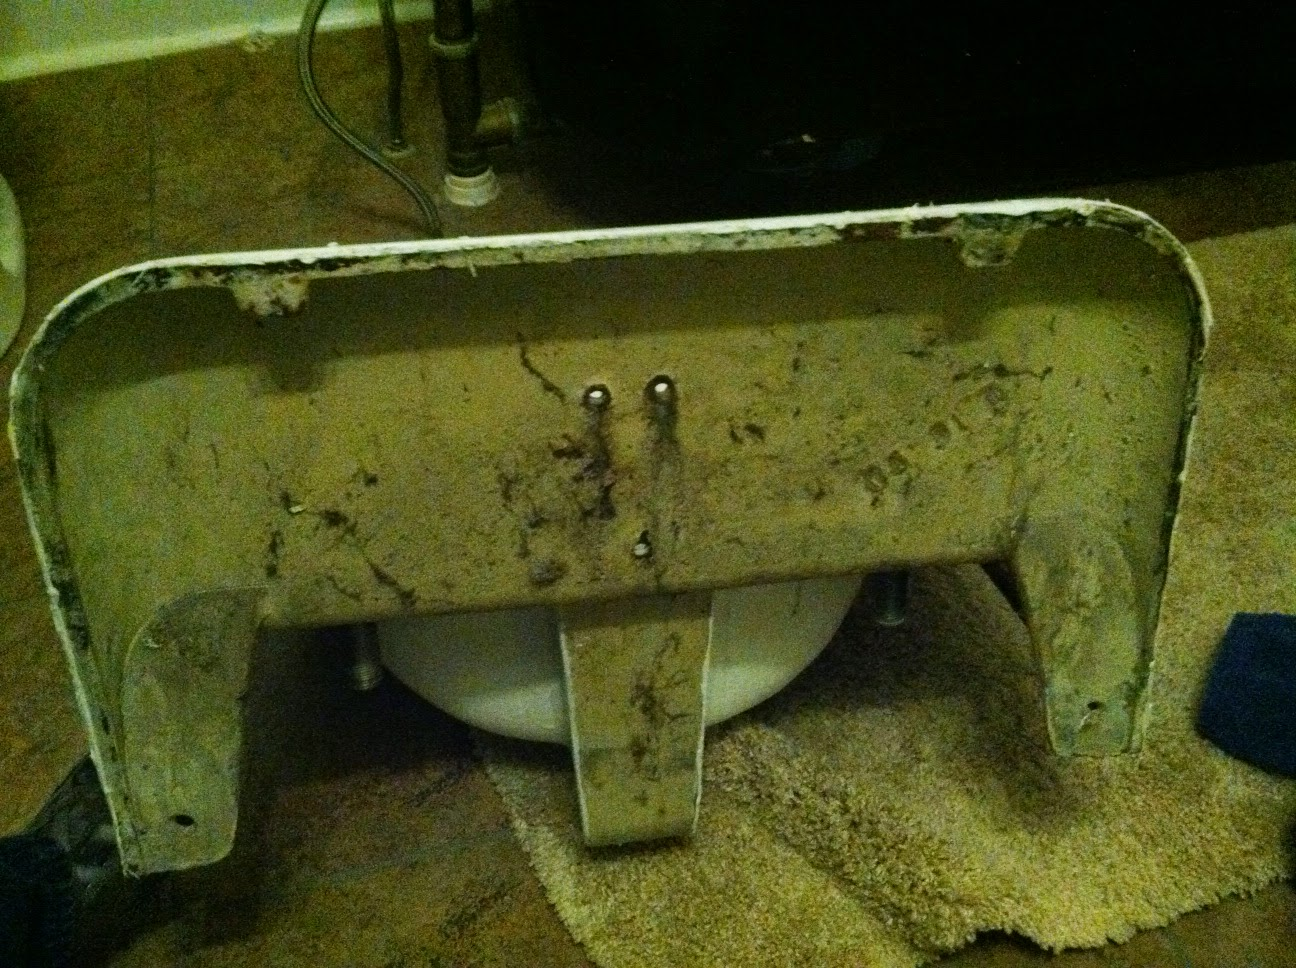 Back of old wall mount sink